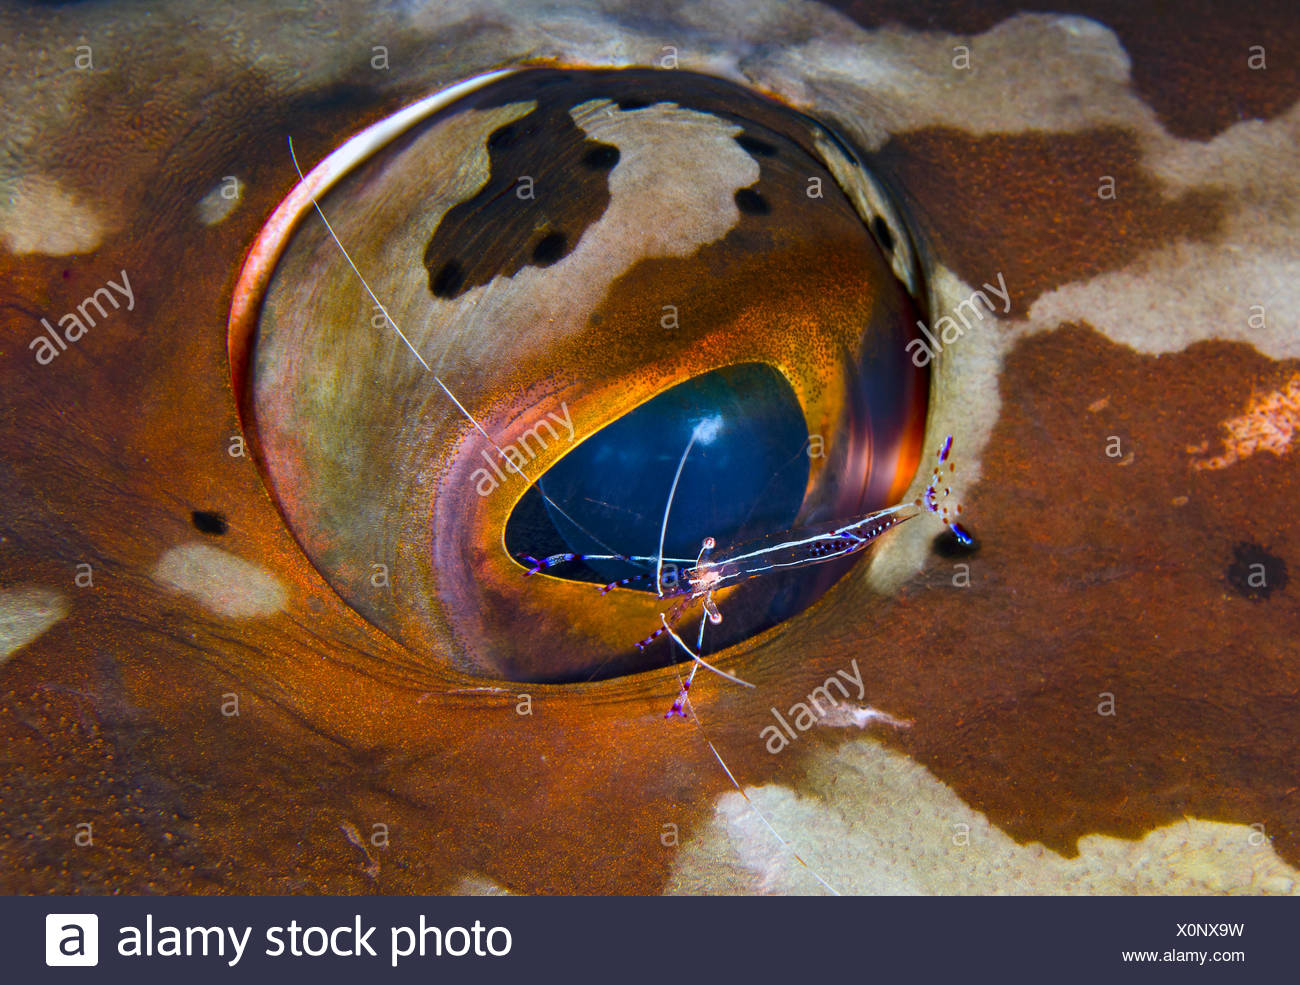 Pederson cleaner shrimp (Periclimenes pedersoni) cleaning the eye of a Nassau grouper (Epinephelus striatus), Bloody Bay Wall, Little Cayman, Cayman Islands. British West Indies, Caribbean Sea. - Stock Image